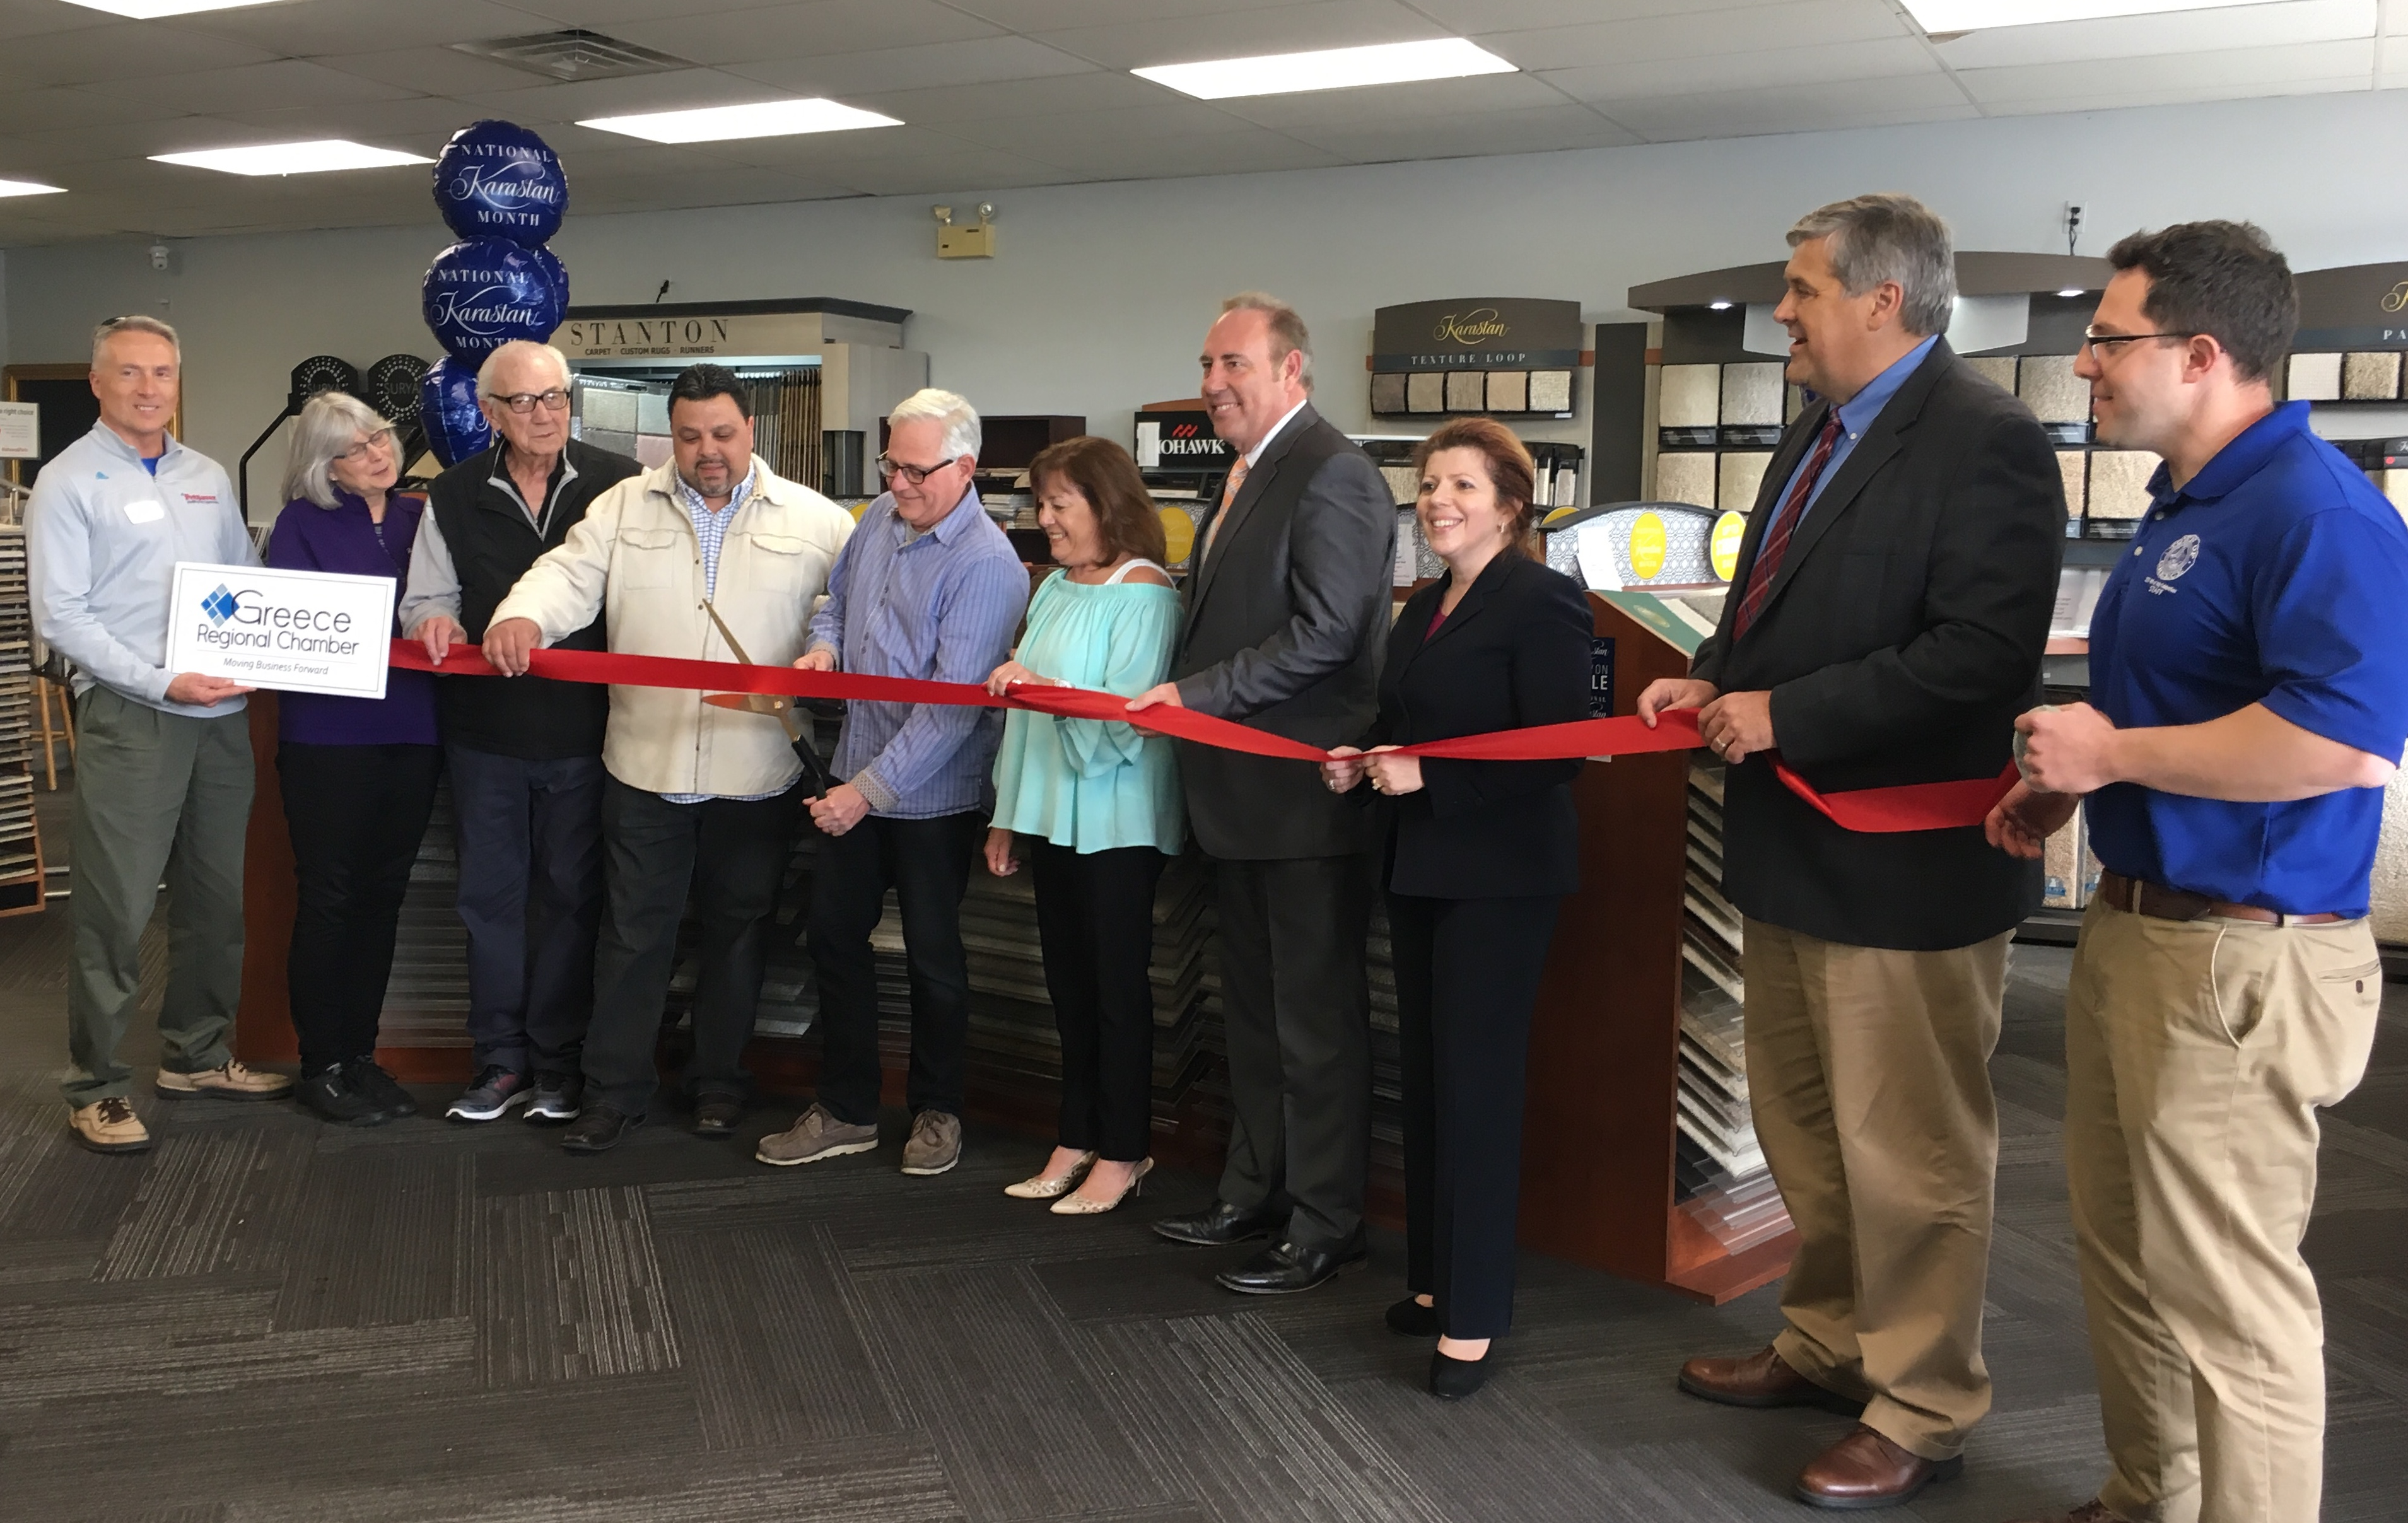 *GRC_Christie Carpets Ribbon Cutting and Recent Expansion Celebration 5.11.18